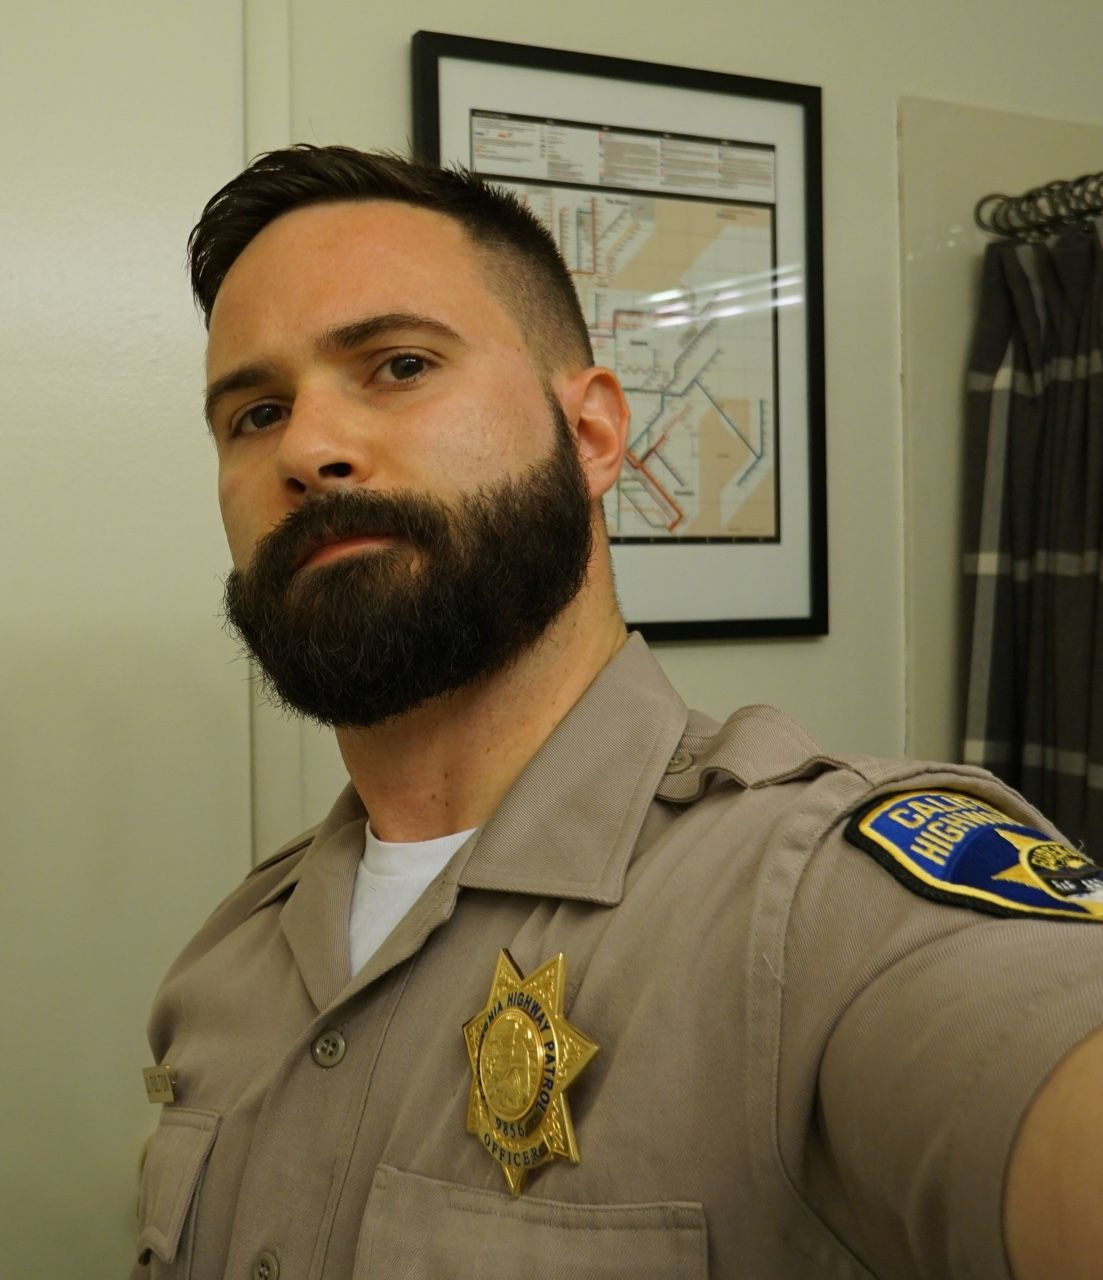 Police haircuts for men yes sir  beard envy  pinterest  alpha male bear men and manly man